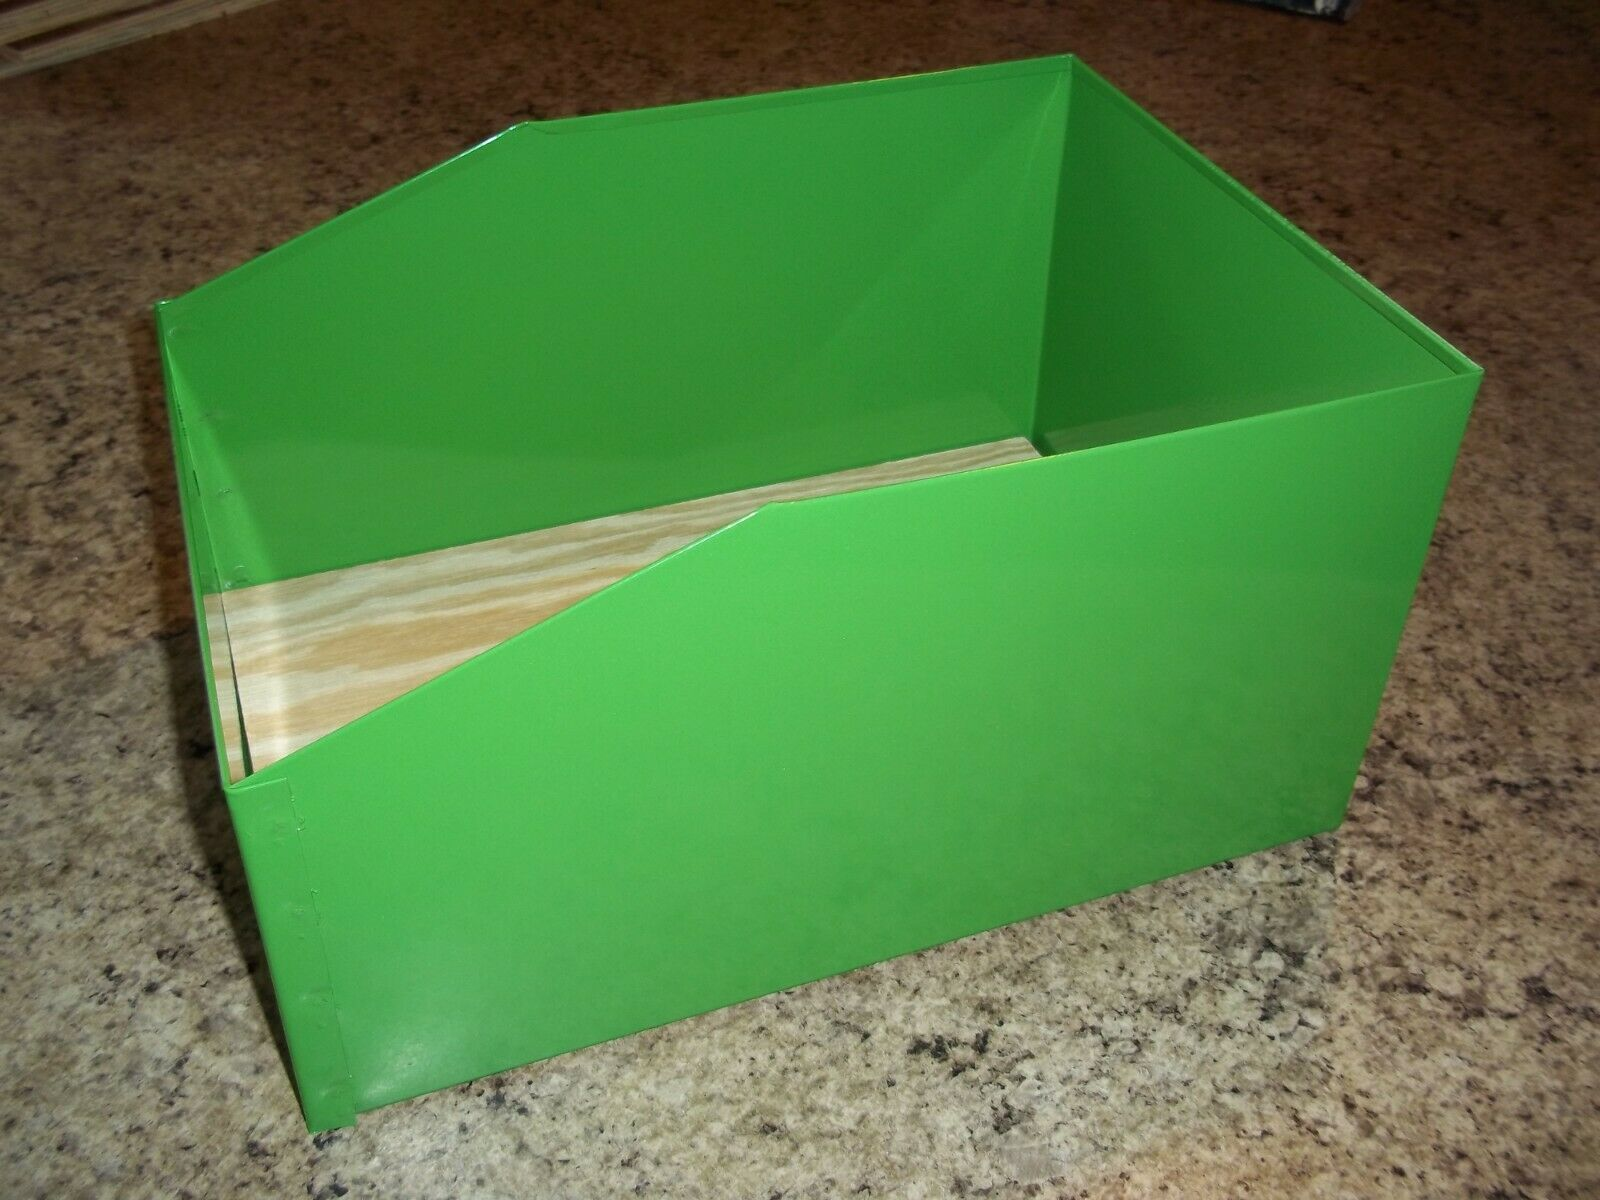 SPECIAL ORDER 9 BRIGHT GREEN METAL RABBIT NEST BOXES 9 12 x 13 12 x 7 lot